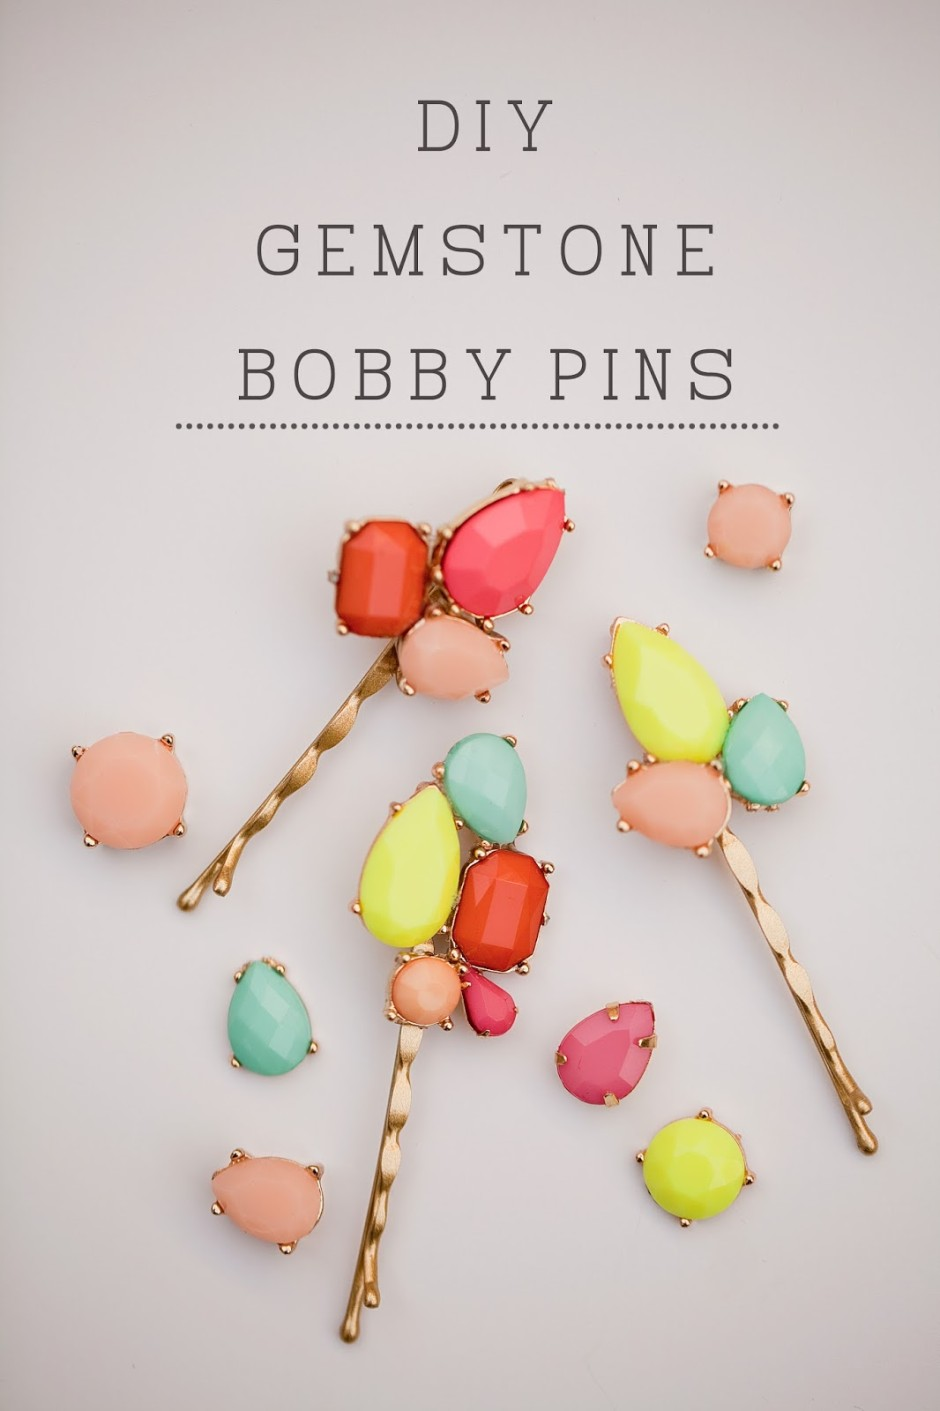 diy-gemstone-bobbypin